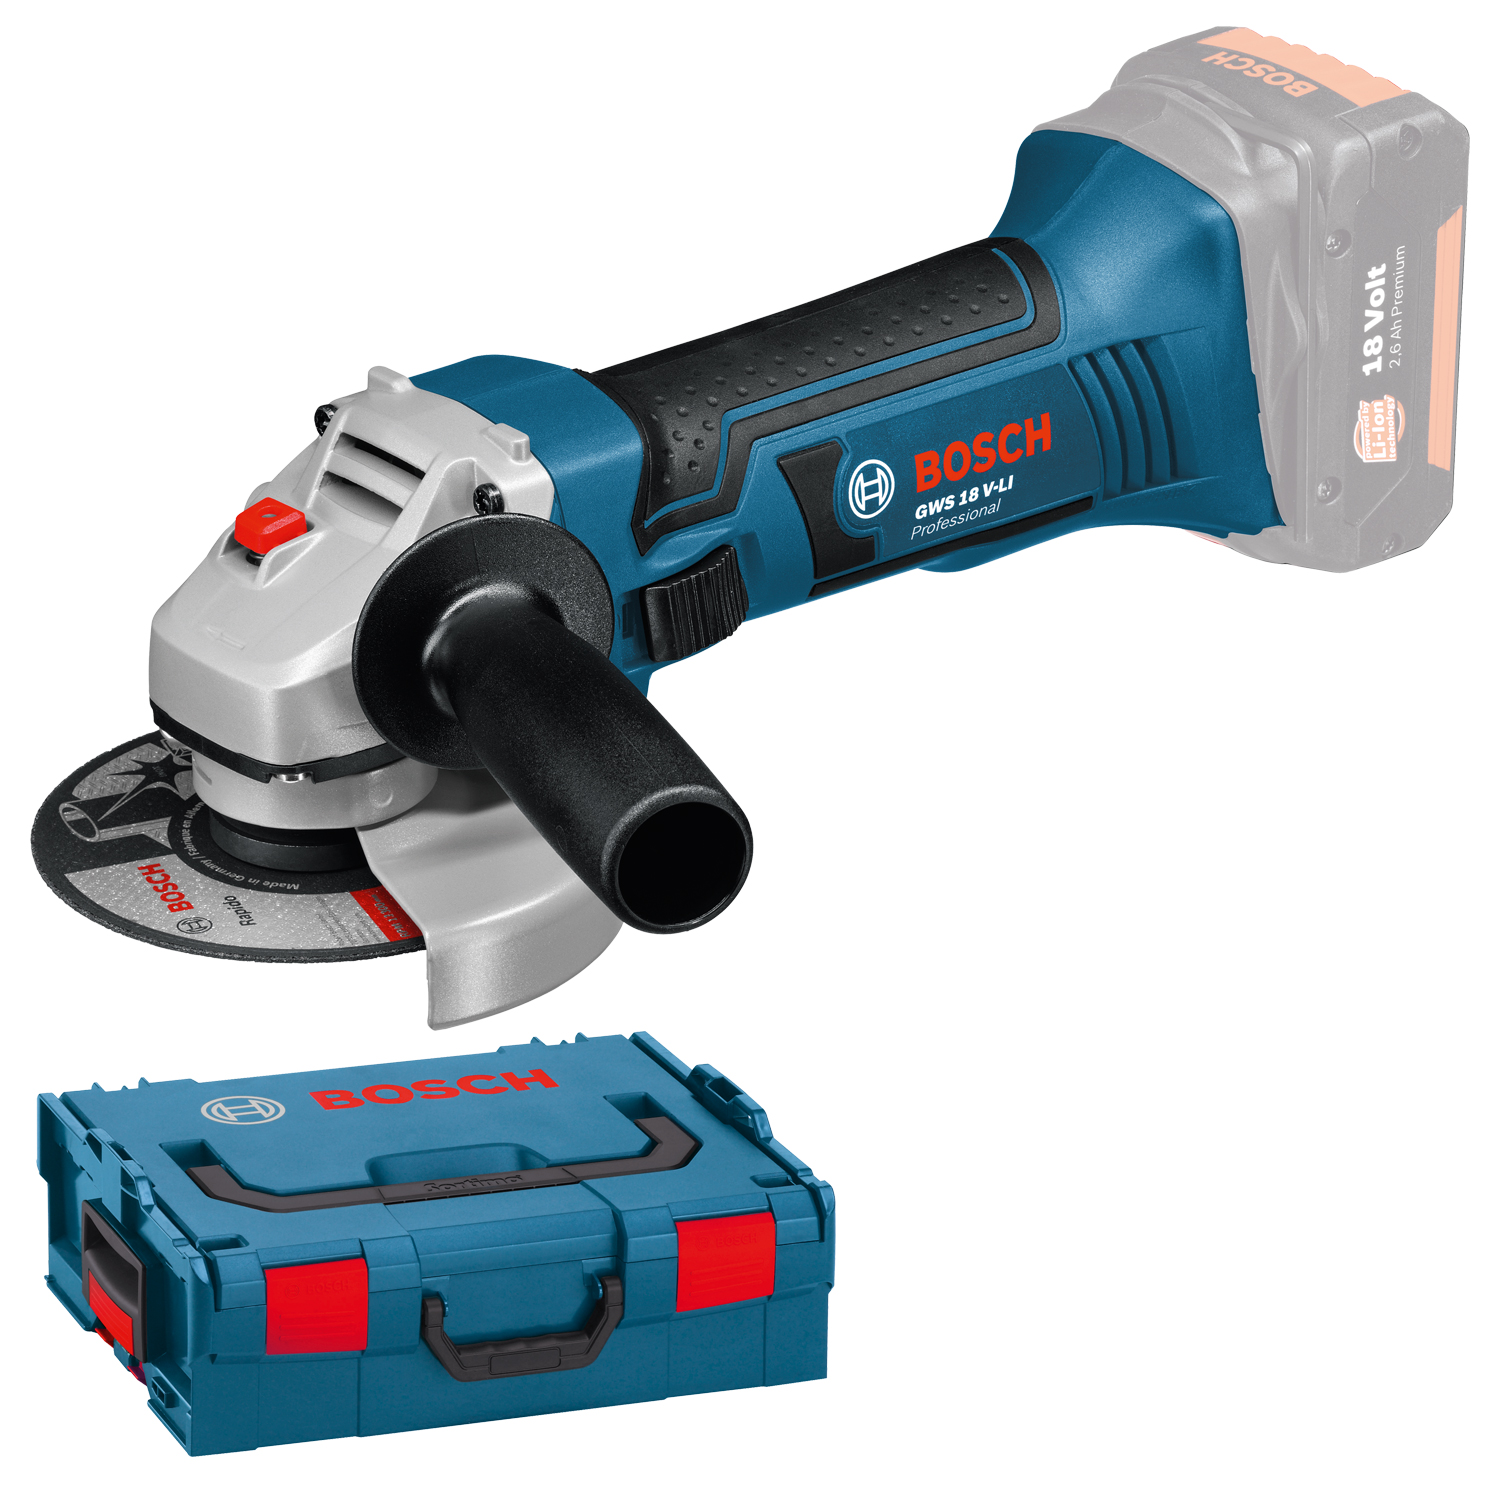 cordless angle grinder bosch gws 18 125 v li professional with l boxx 060193a308. Black Bedroom Furniture Sets. Home Design Ideas